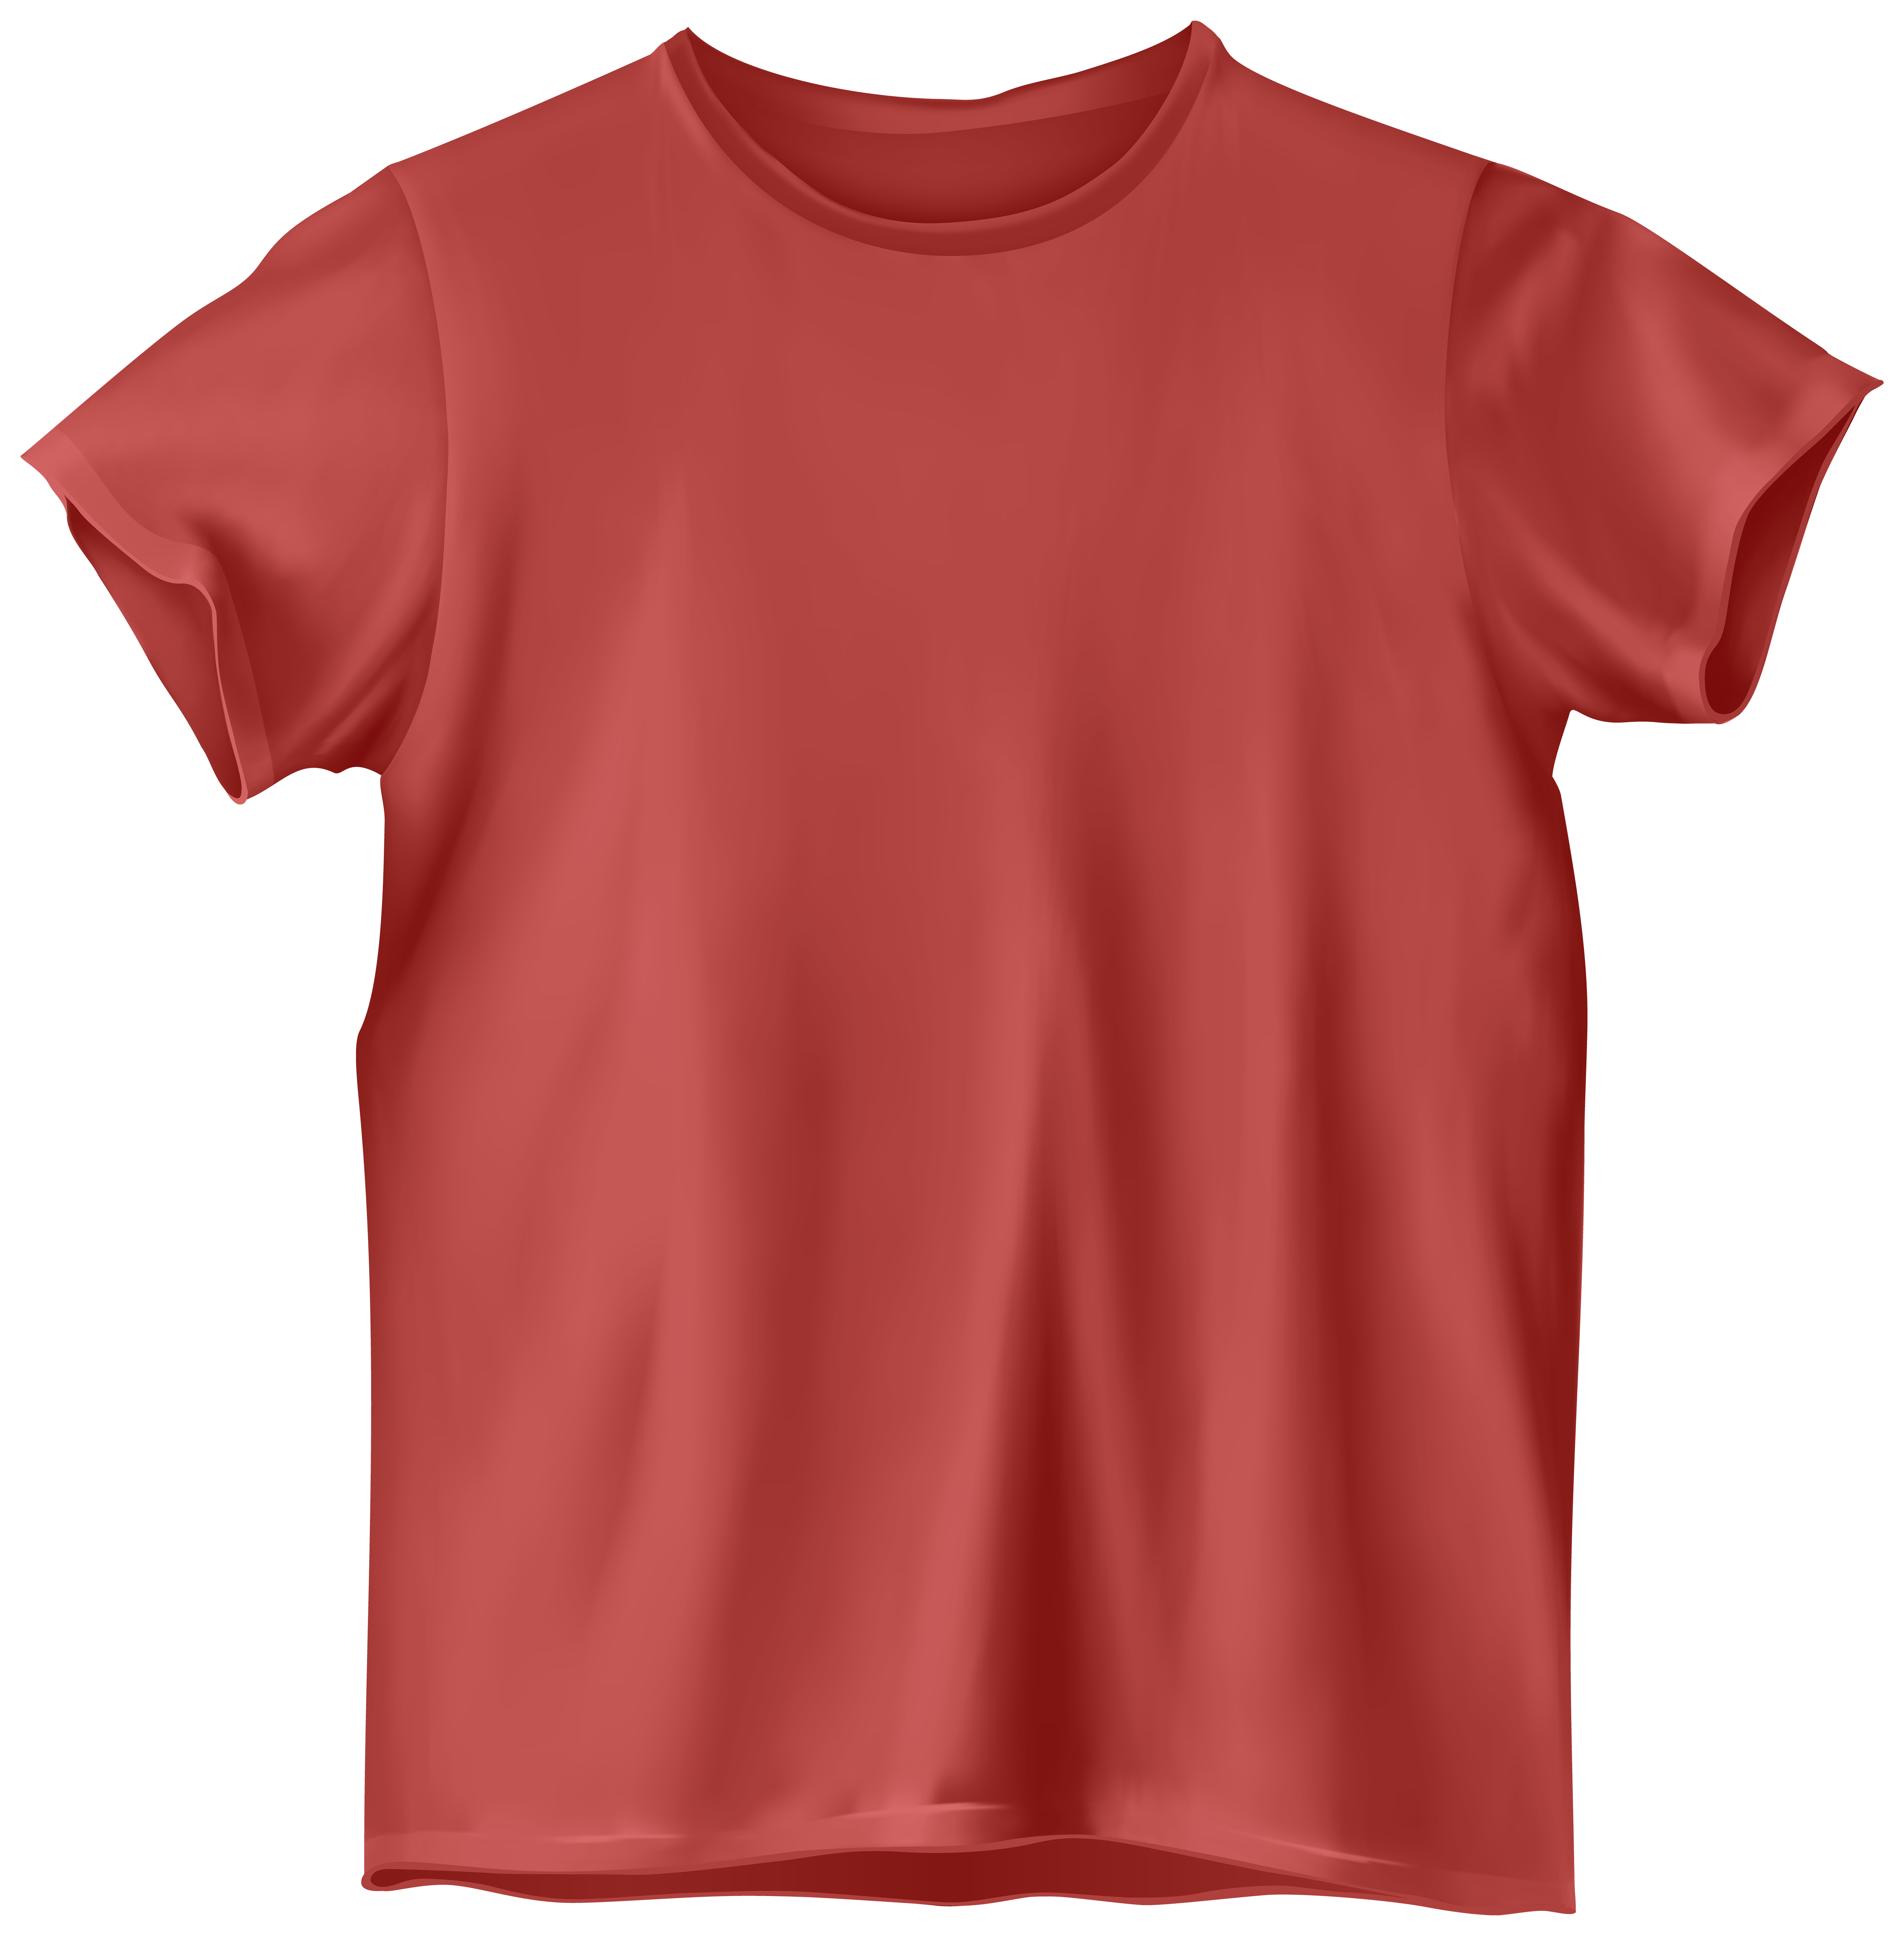 T clipart shrit. Red shirt png clip